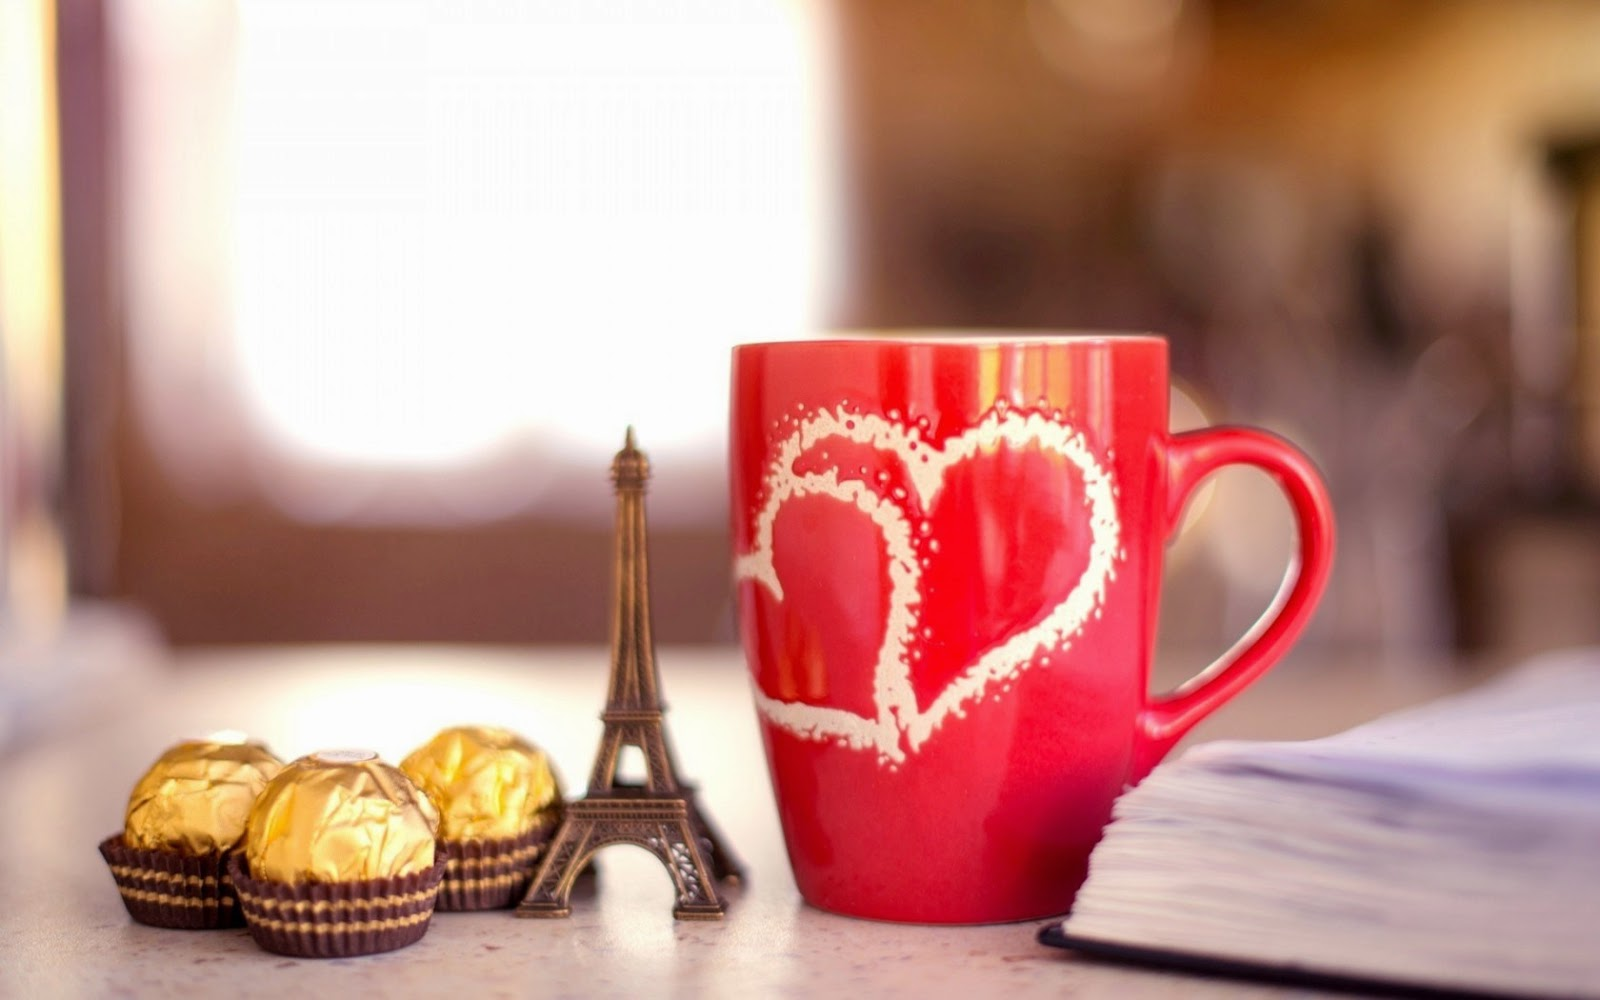 mug-heart-hdlovewallpapers-at-paris